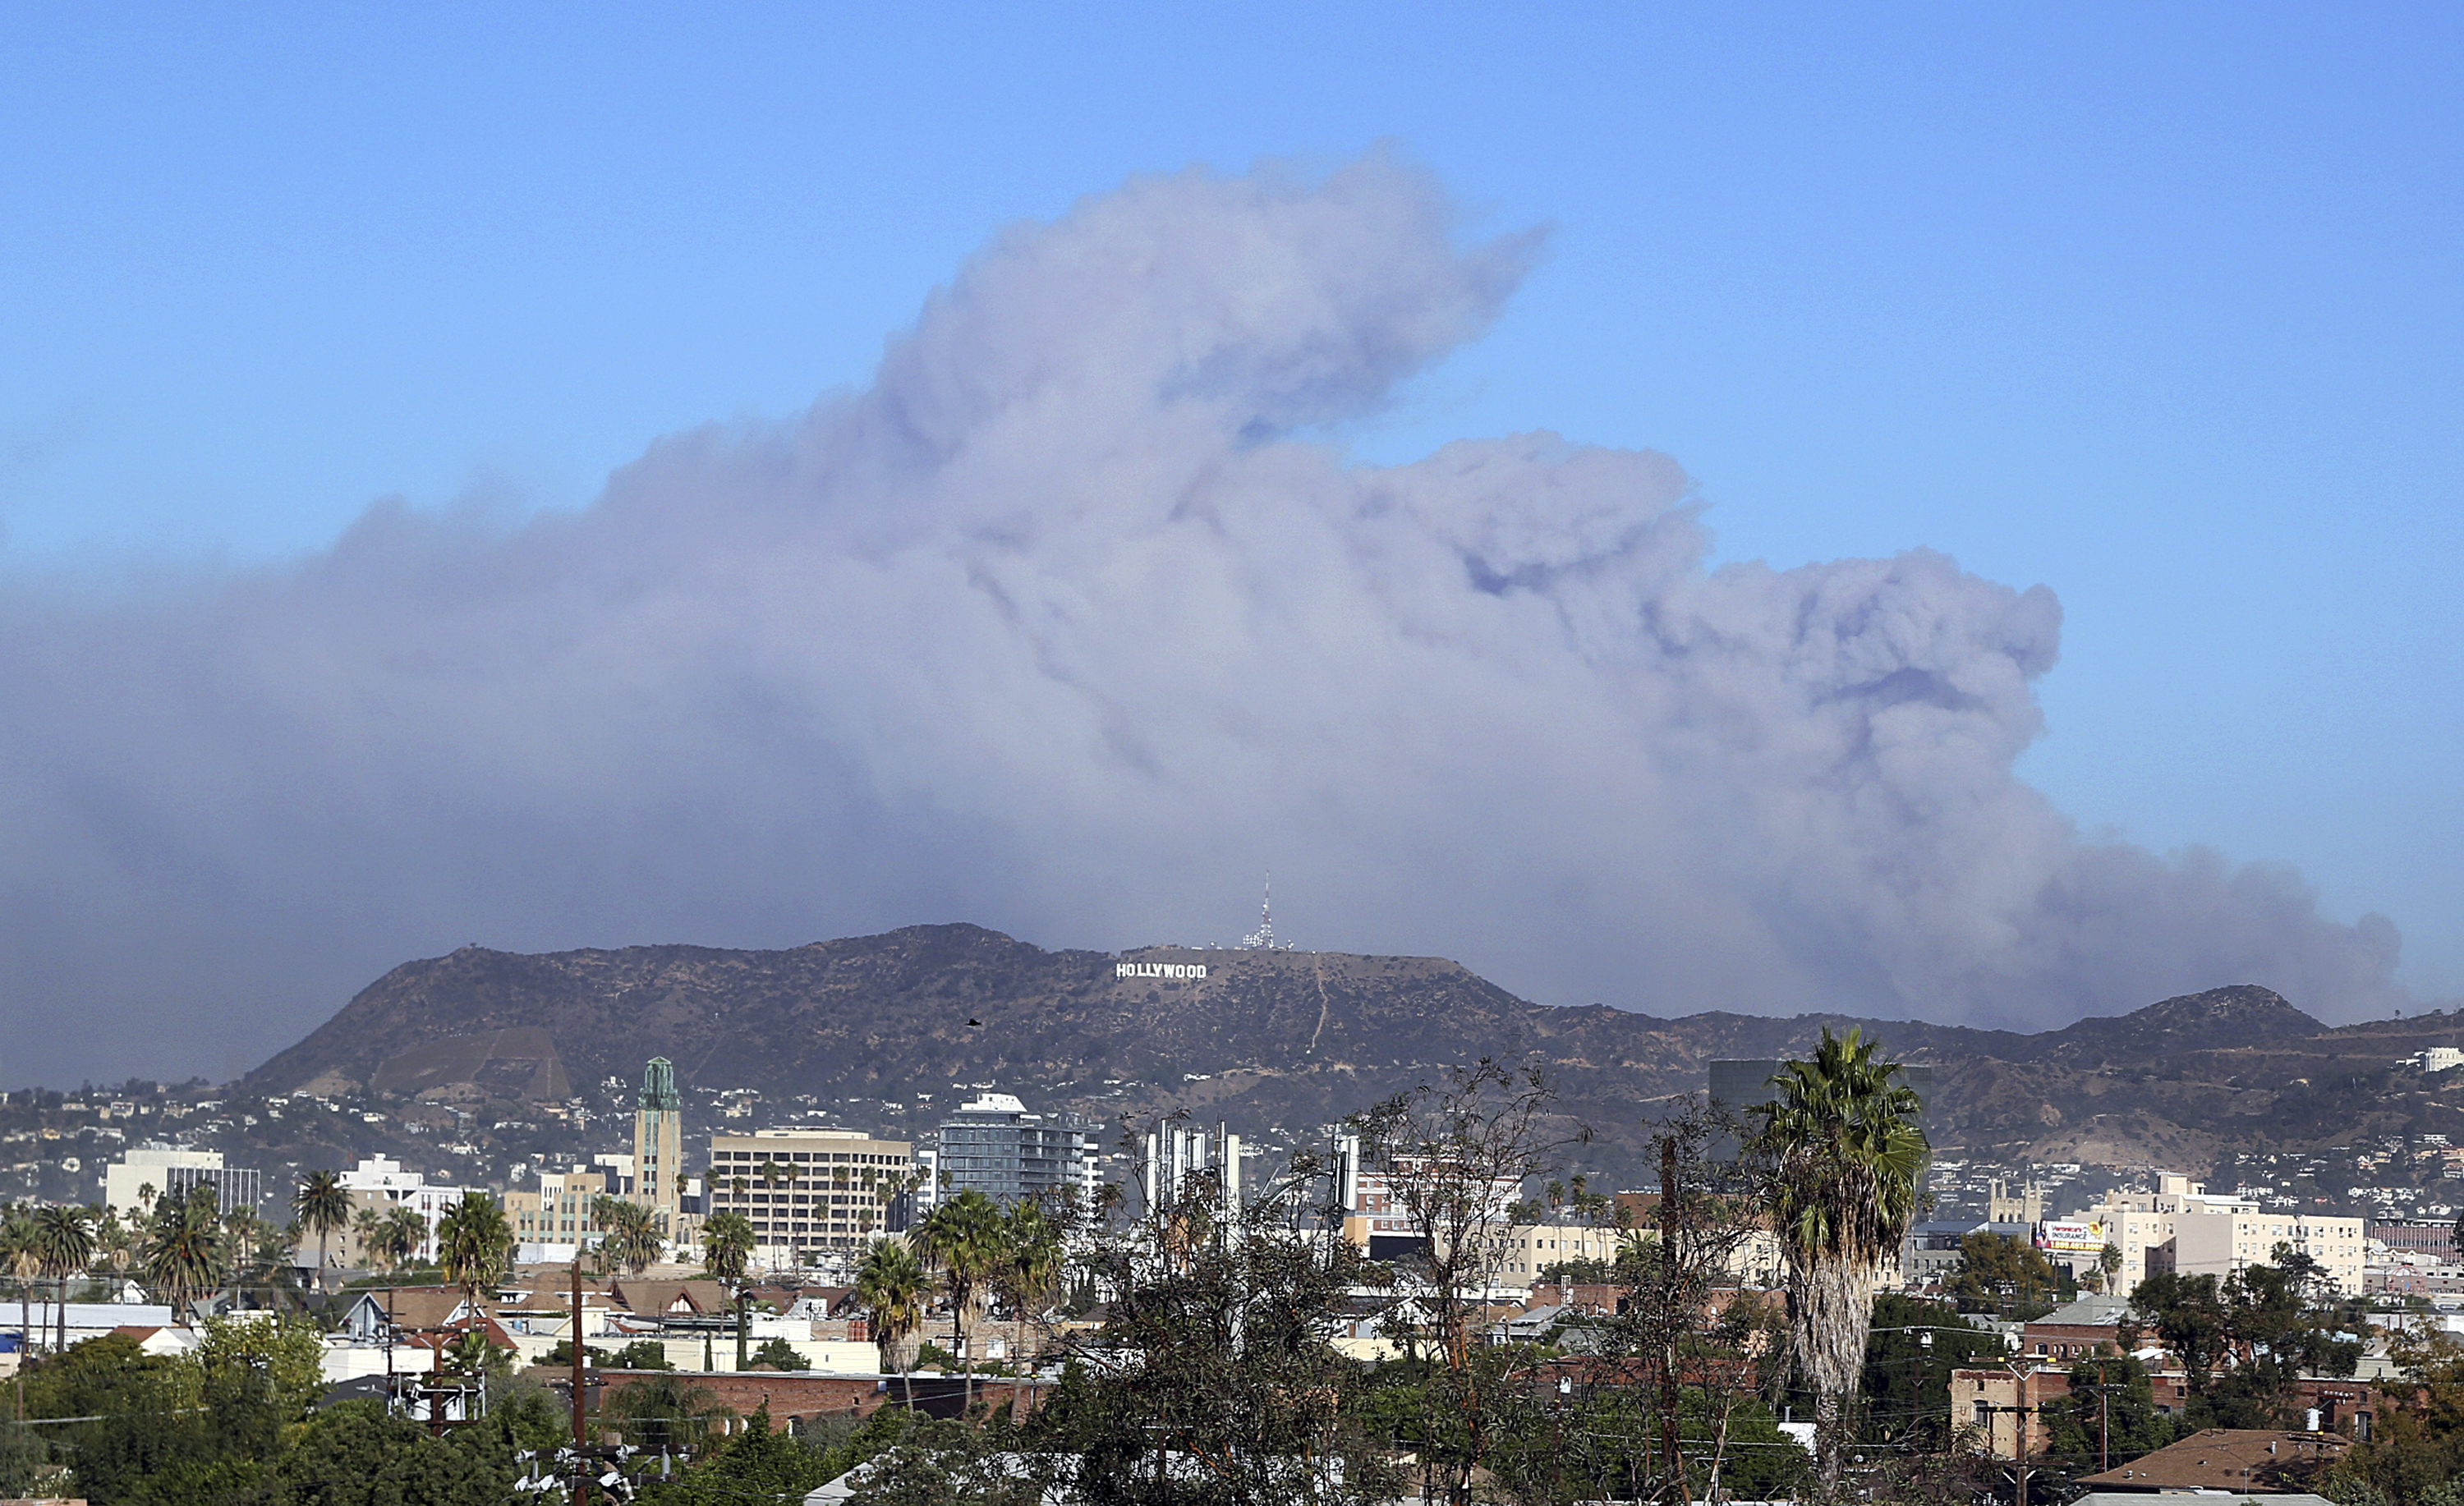 "<div class=""meta image-caption""><div class=""origin-logo origin-image none""><span>none</span></div><span class=""caption-text"">Smoke from the Creek wildfire in the San Gabriel Mountains, the second range behind the Hollywood Hills, home of the Hollywood sign, looms up over Los Angeles on Dec. 5. (Reed Saxon/AP Photo)</span></div>"